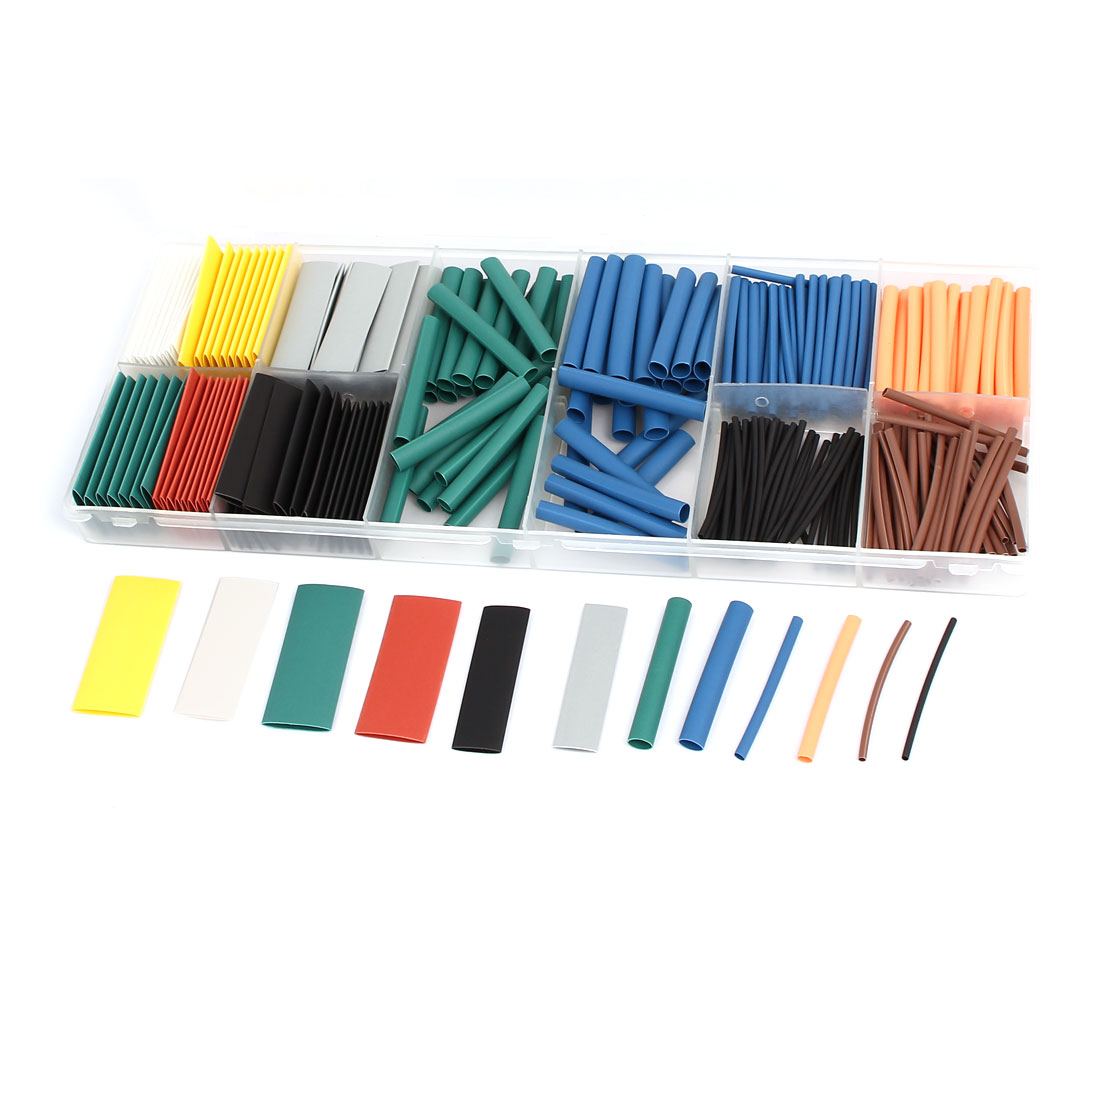 Nine Colors Heat Shrink Tube Wire Wrap Cable Sleeve Sets 9 Sizes w Case 280pcs